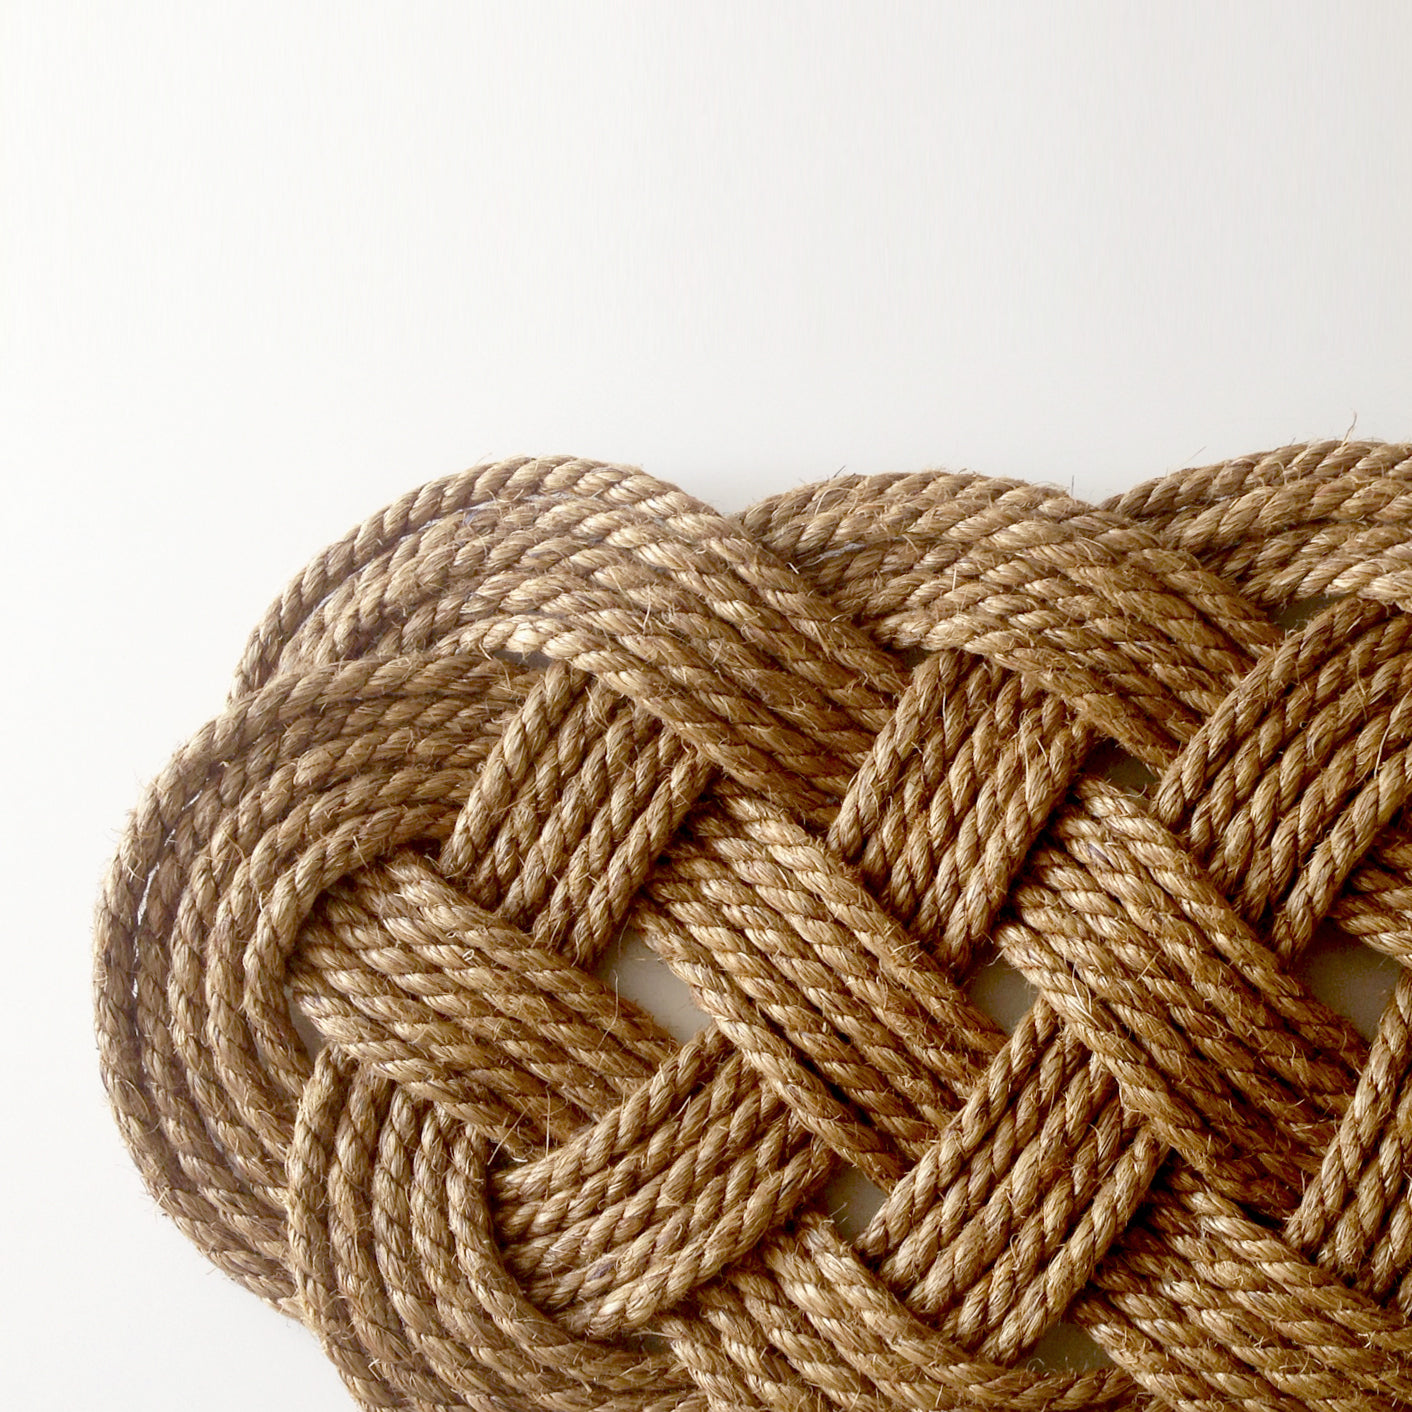 Knotted Rope Doormat Workshop with Wendy Nannestad - Saturday 29th June 1-4pm